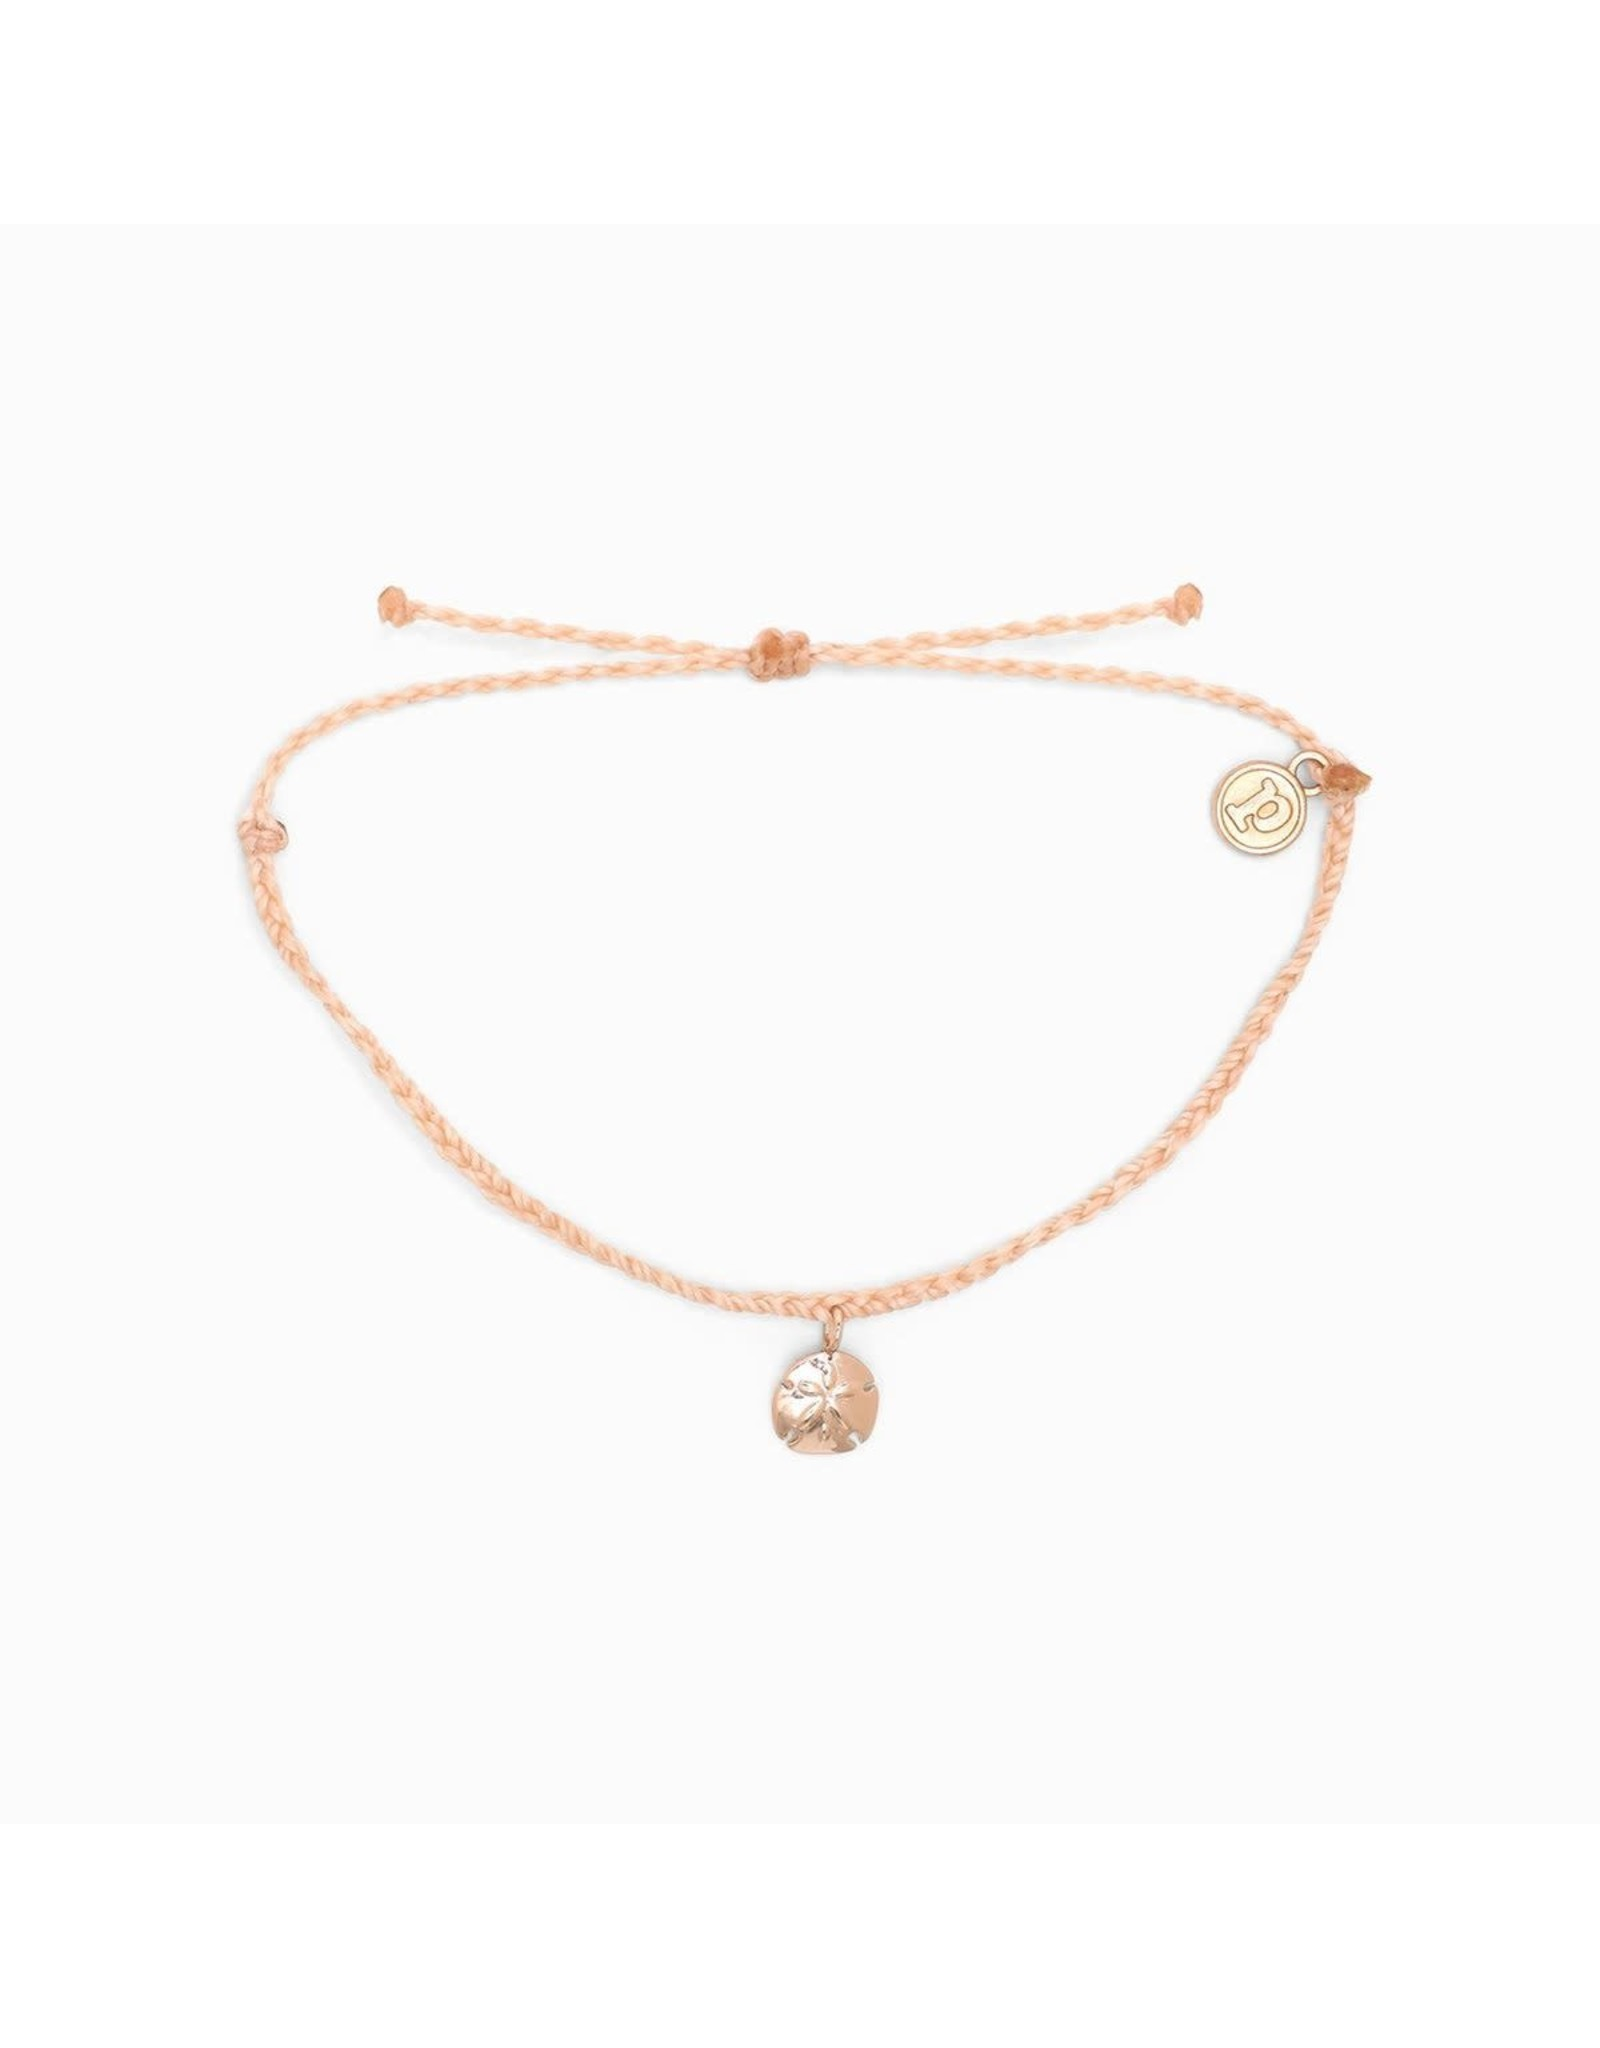 ROSE GOLD SAND DOLLAR Bracelet, BLUSH